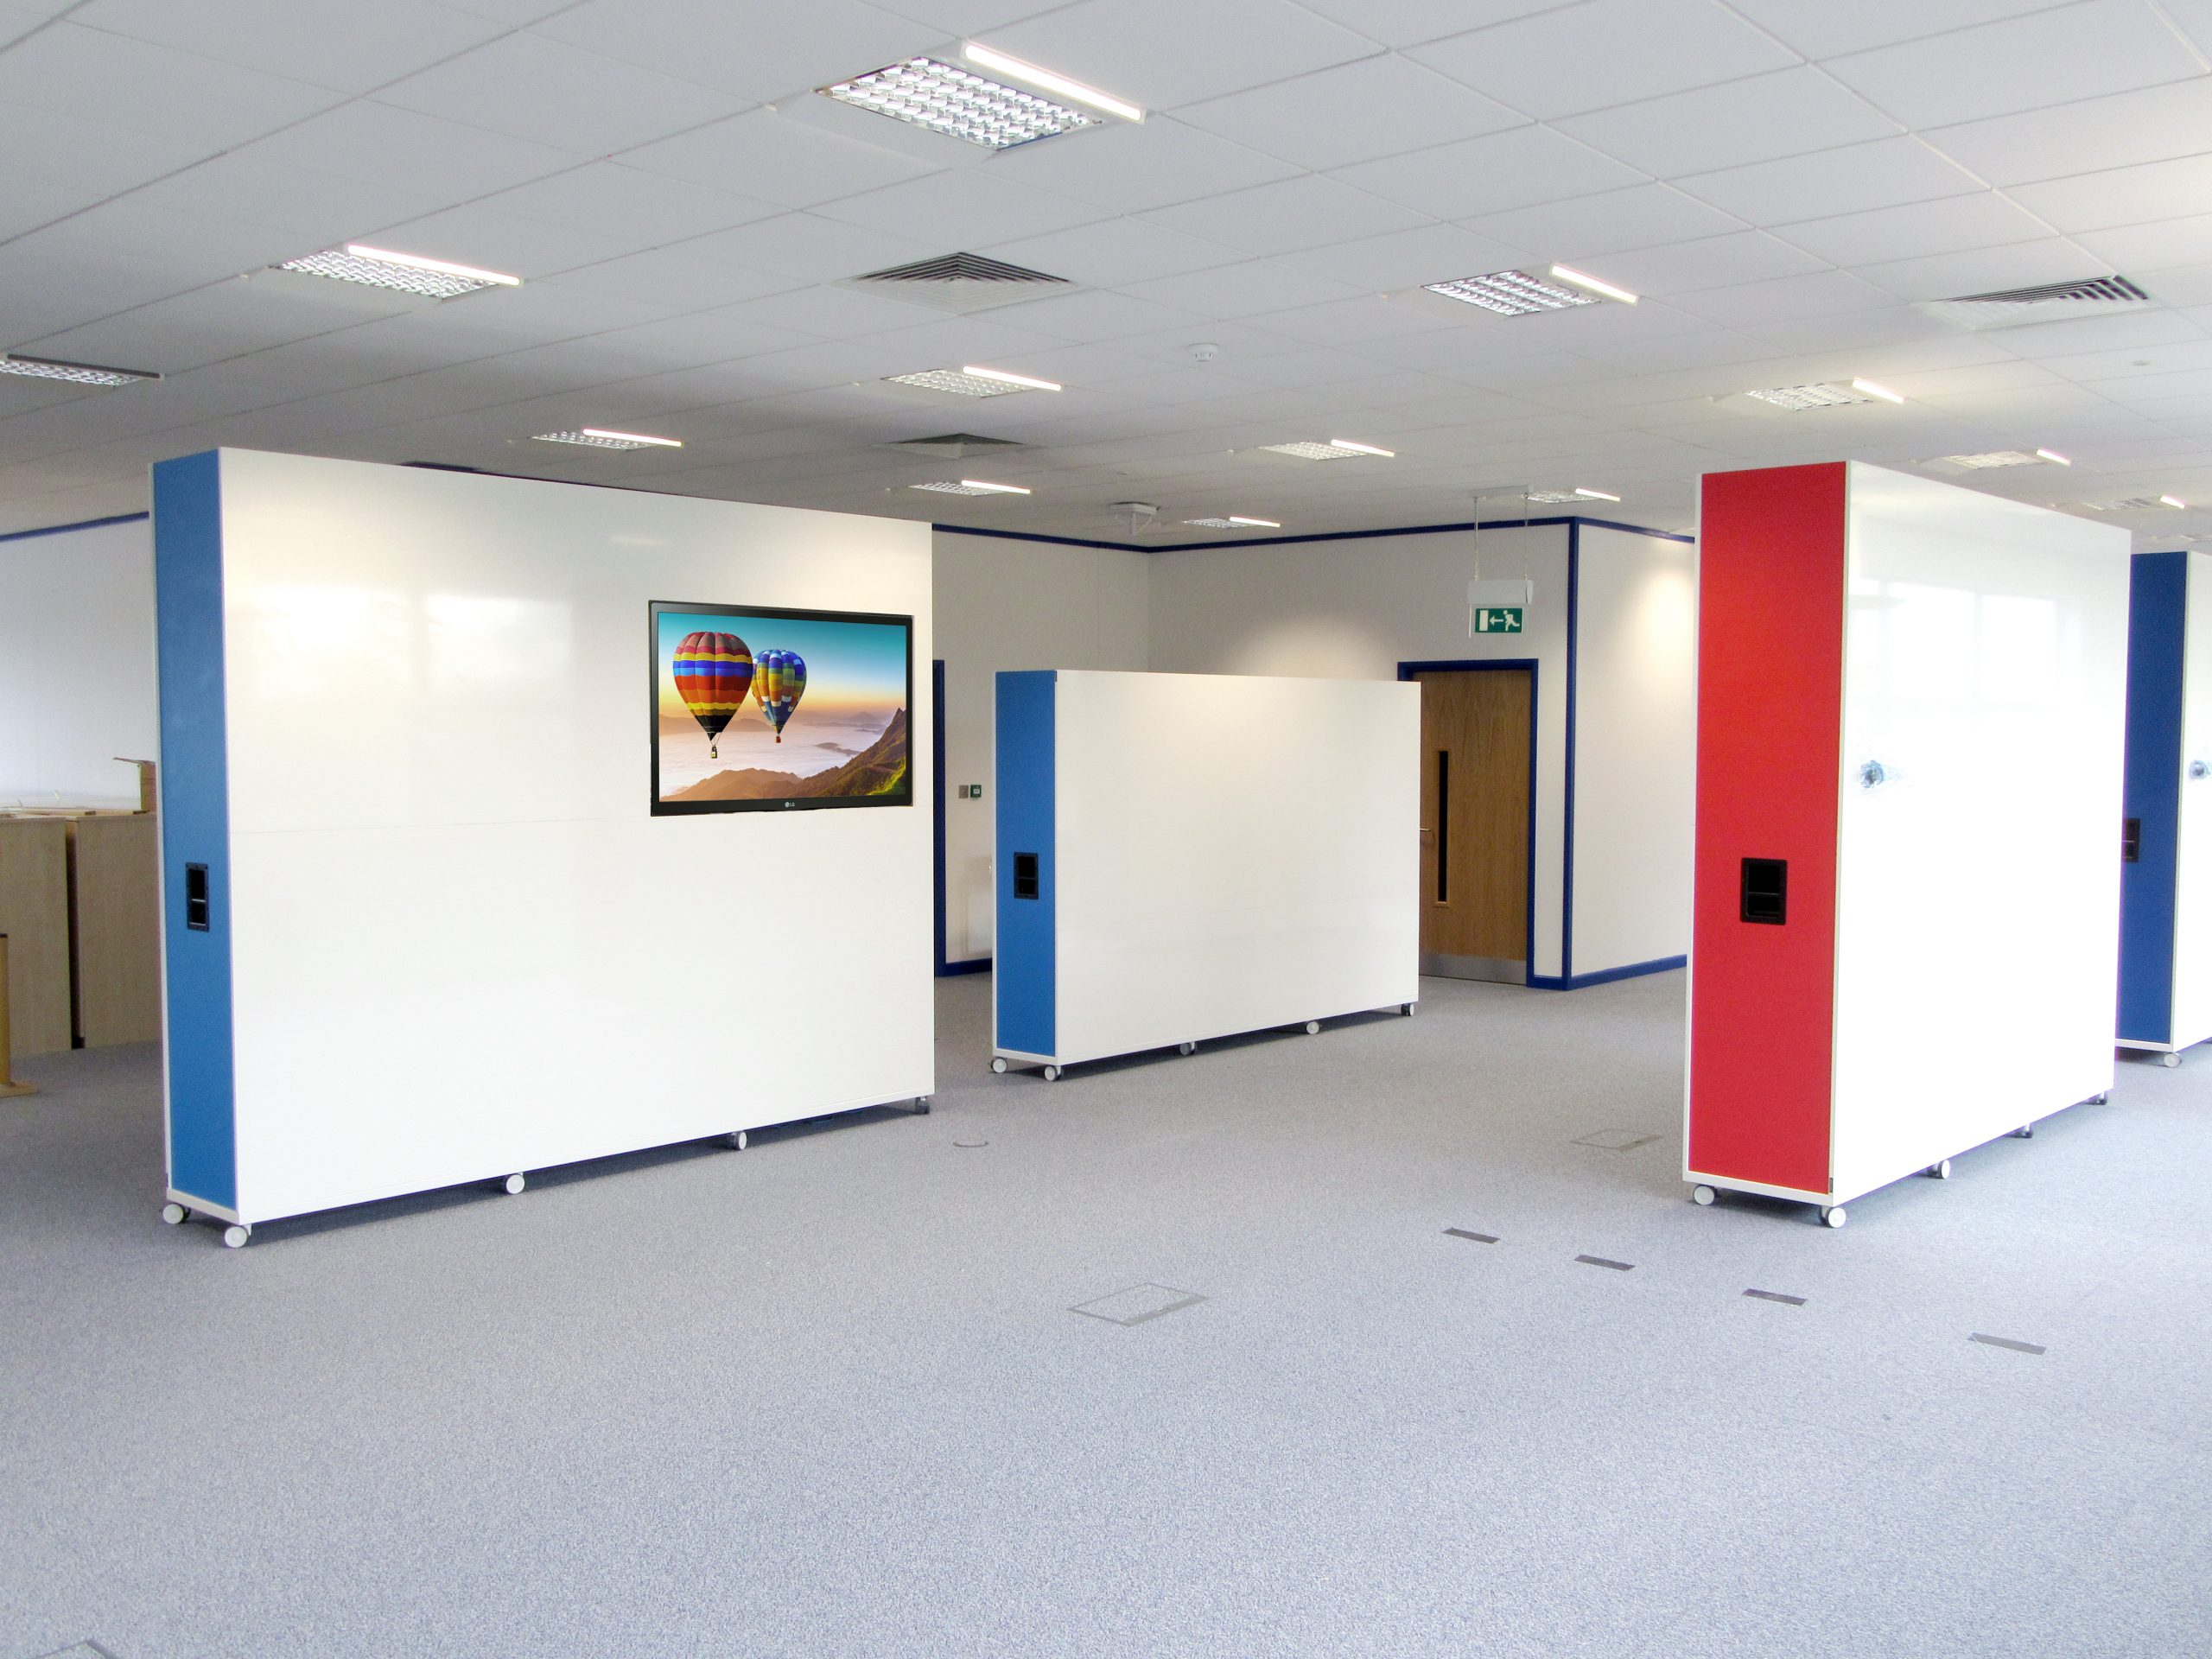 Standard and large office dividers